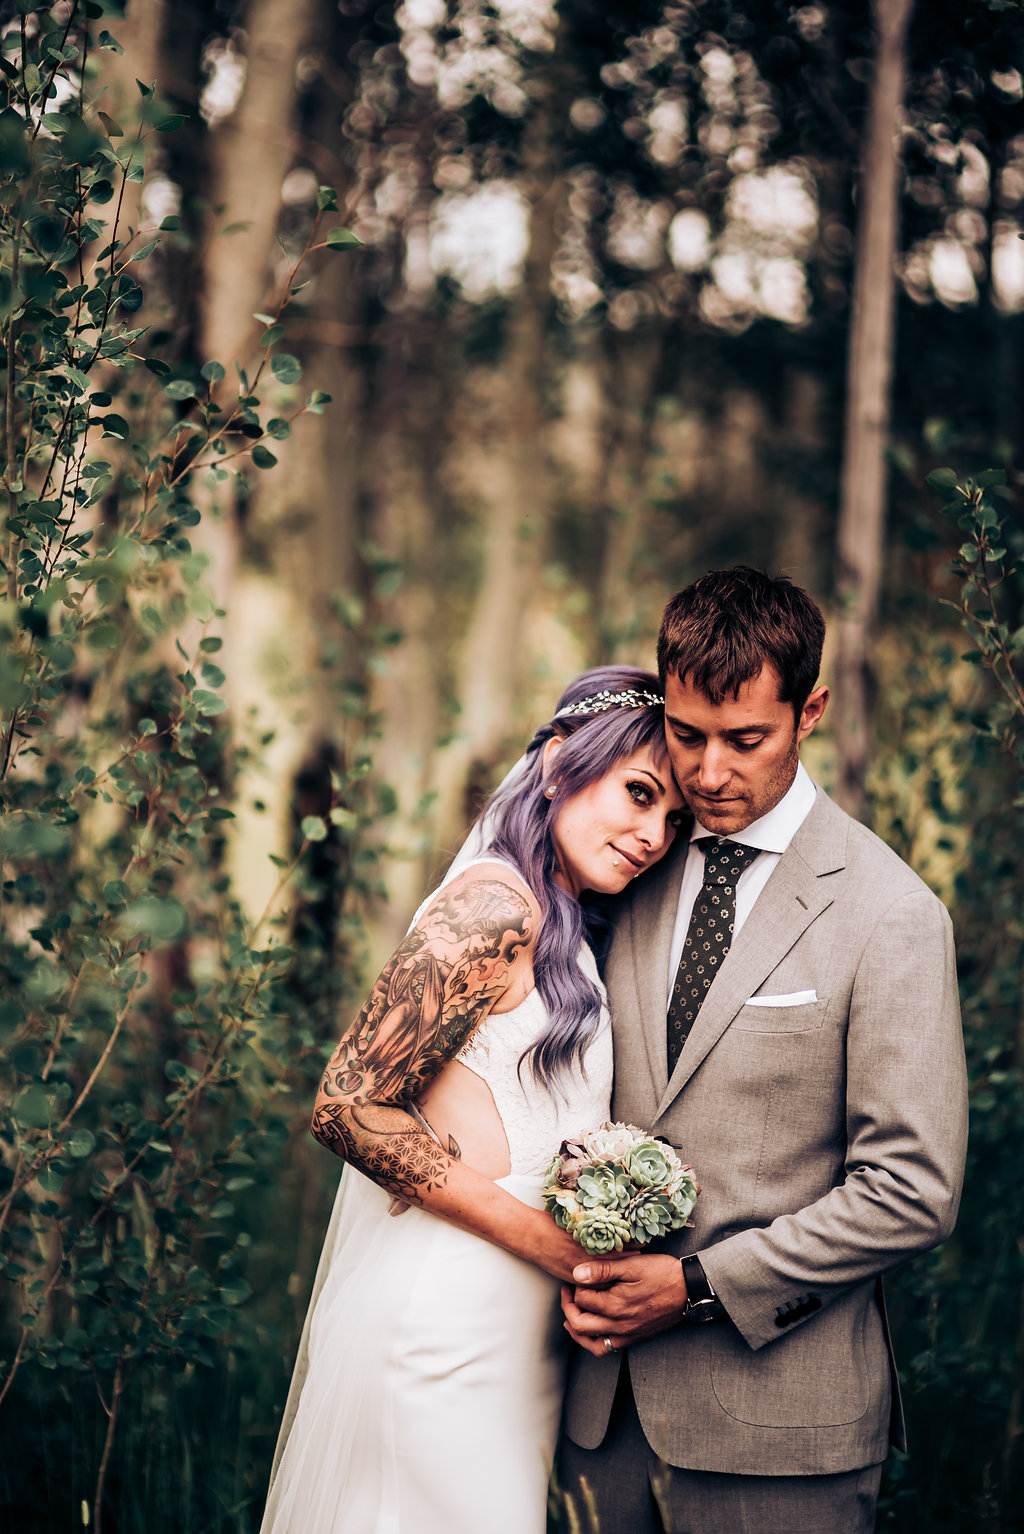 This rustic mountain wedding is full of personality and DIY that made it very special